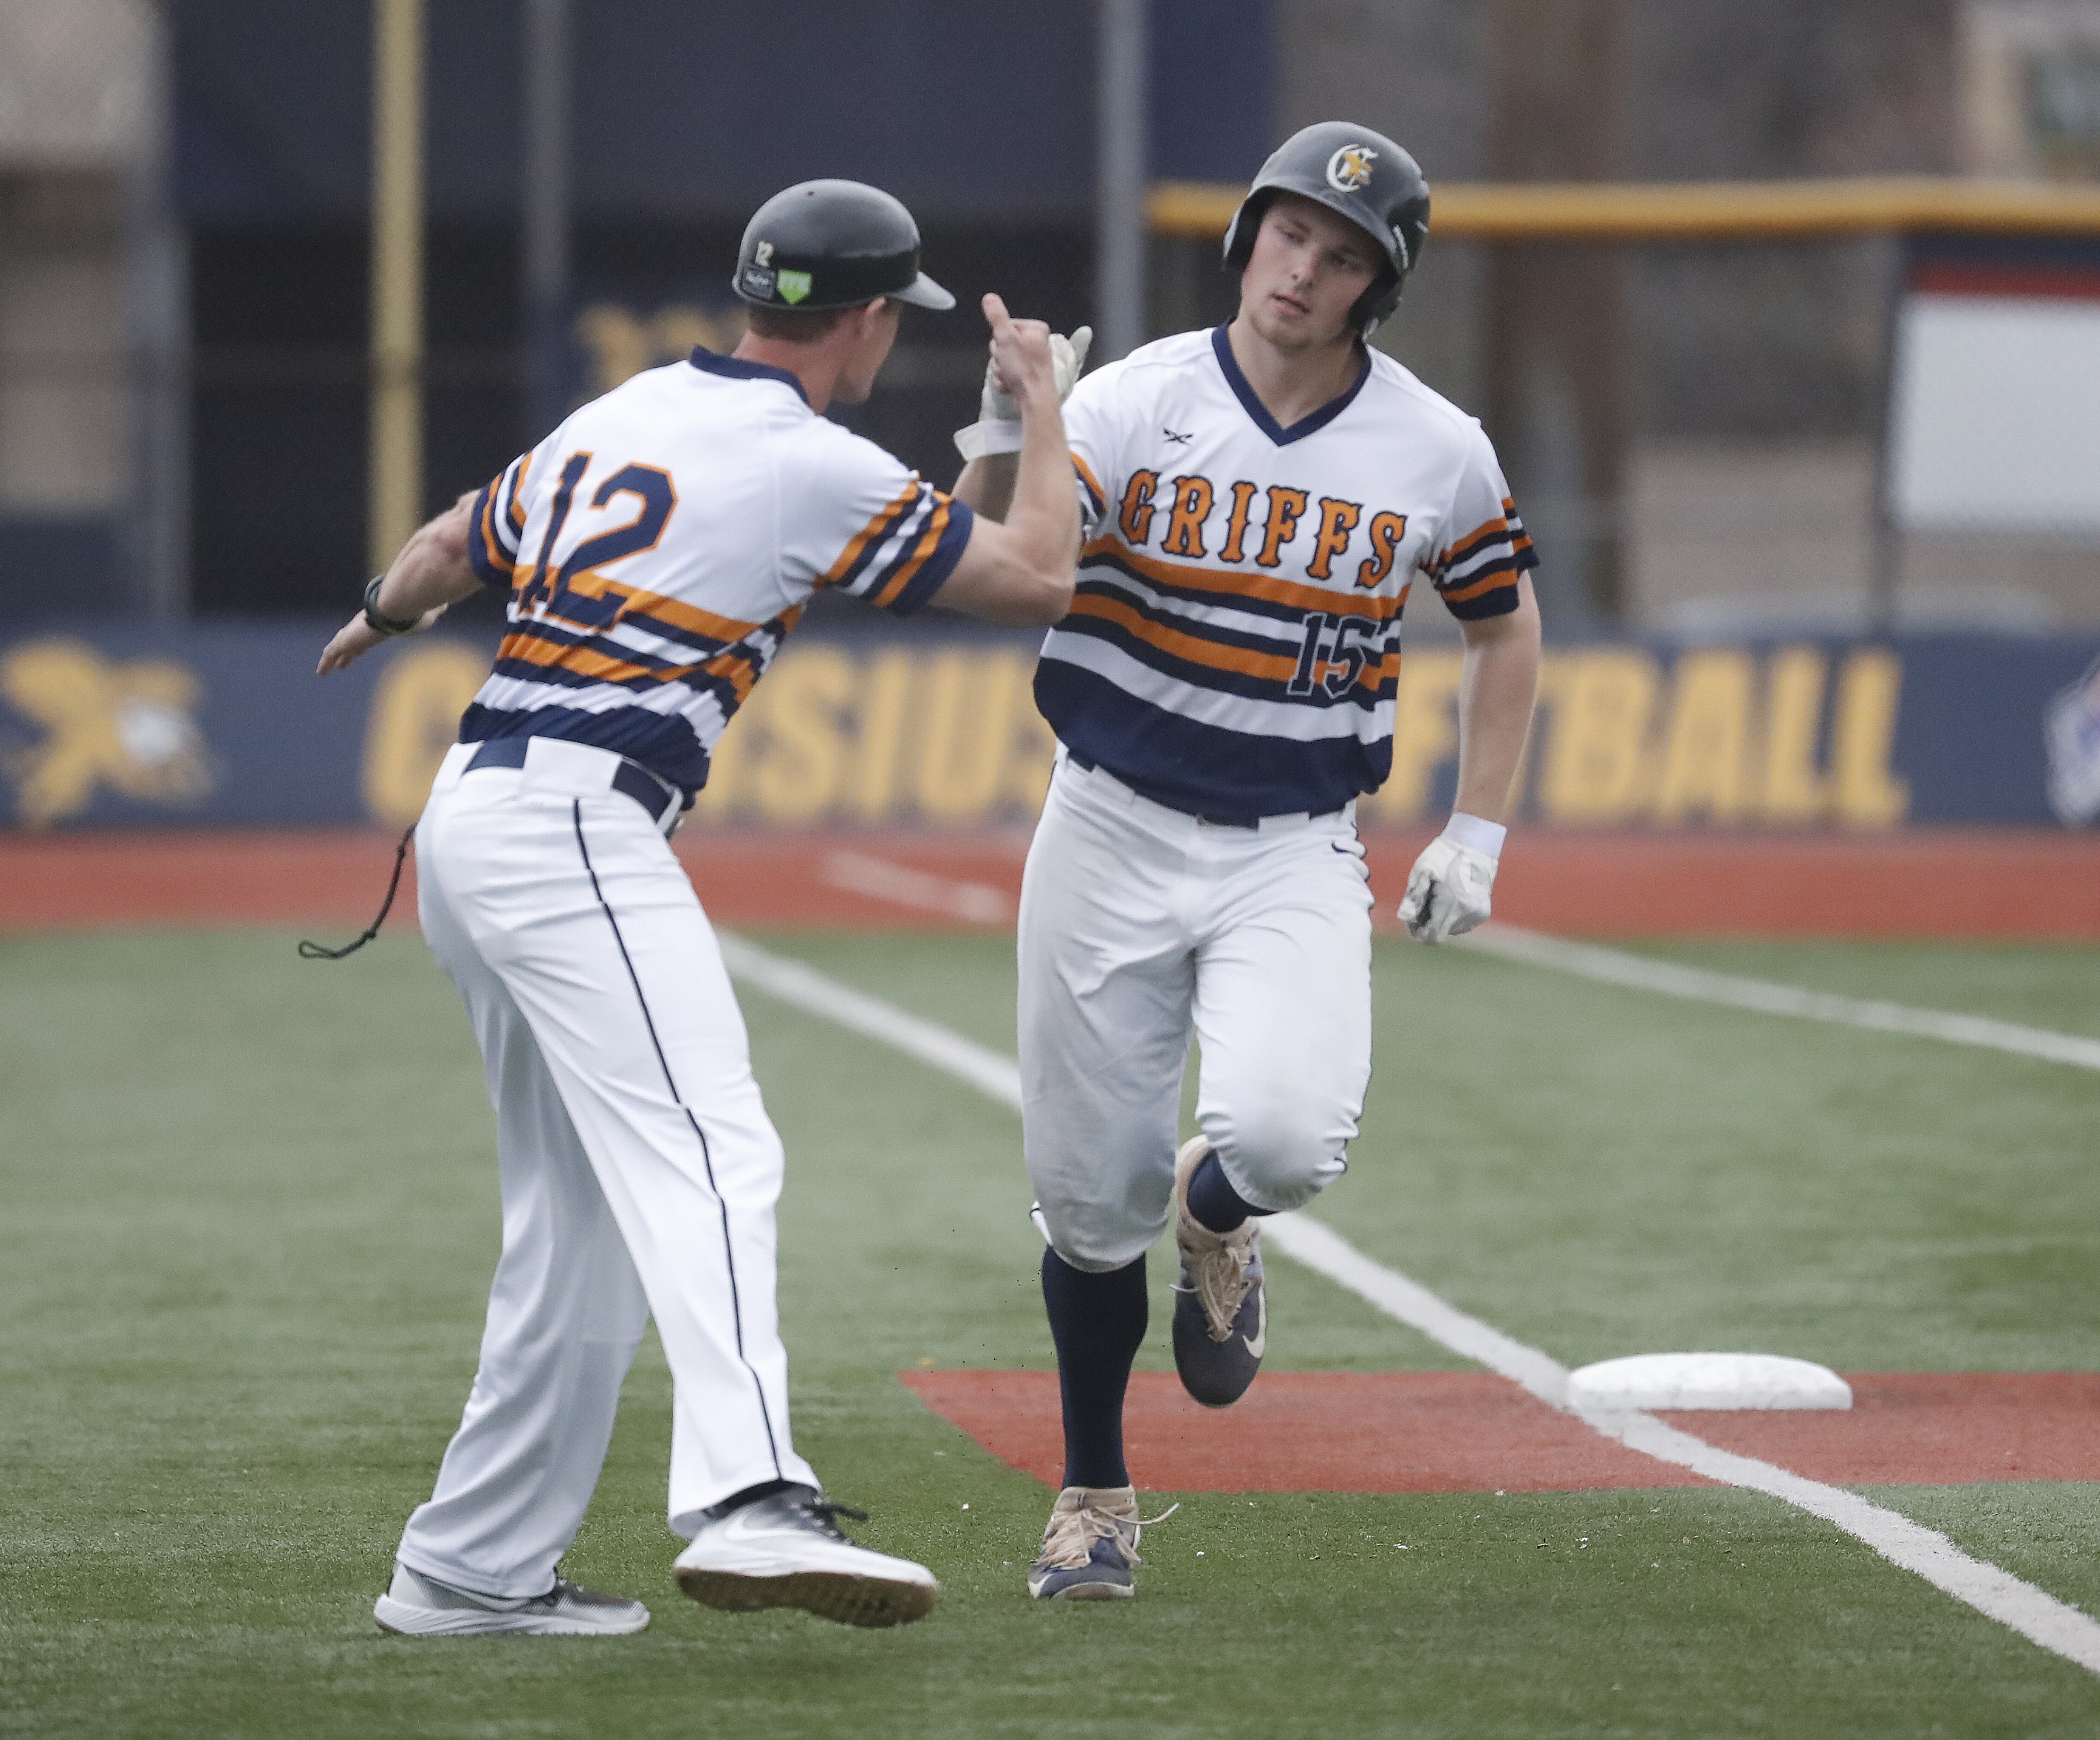 Canisius player Ryan Stekl is congratulated on his two- run walk-off homer against UB by assistant coach Matt Mazurek Tuesday at the Demske Sports Complex. (Harry Scull Jr./Buffalo News)